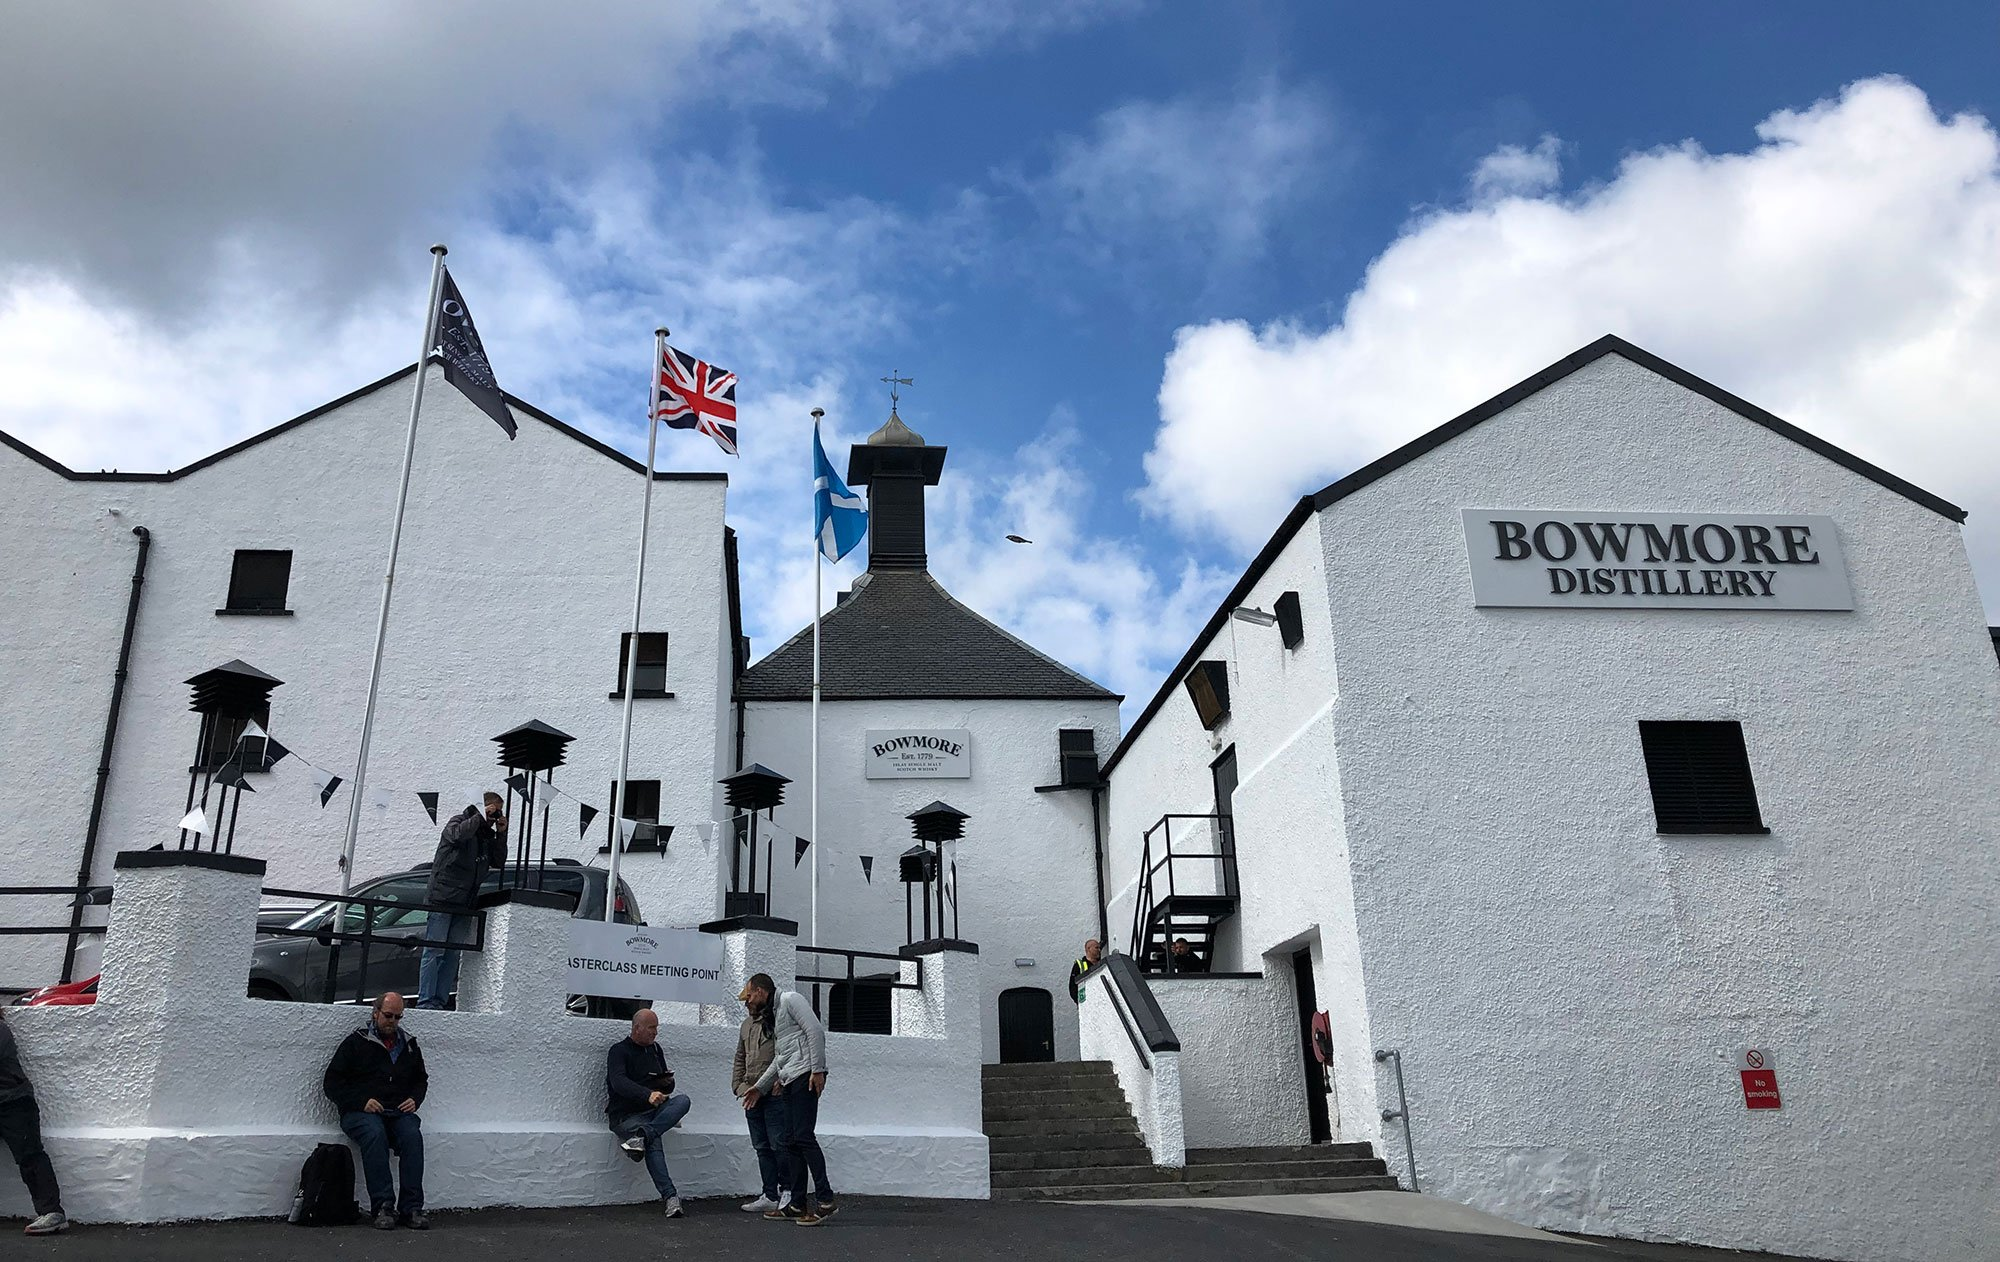 We put your Bowmore questions to David Turner!